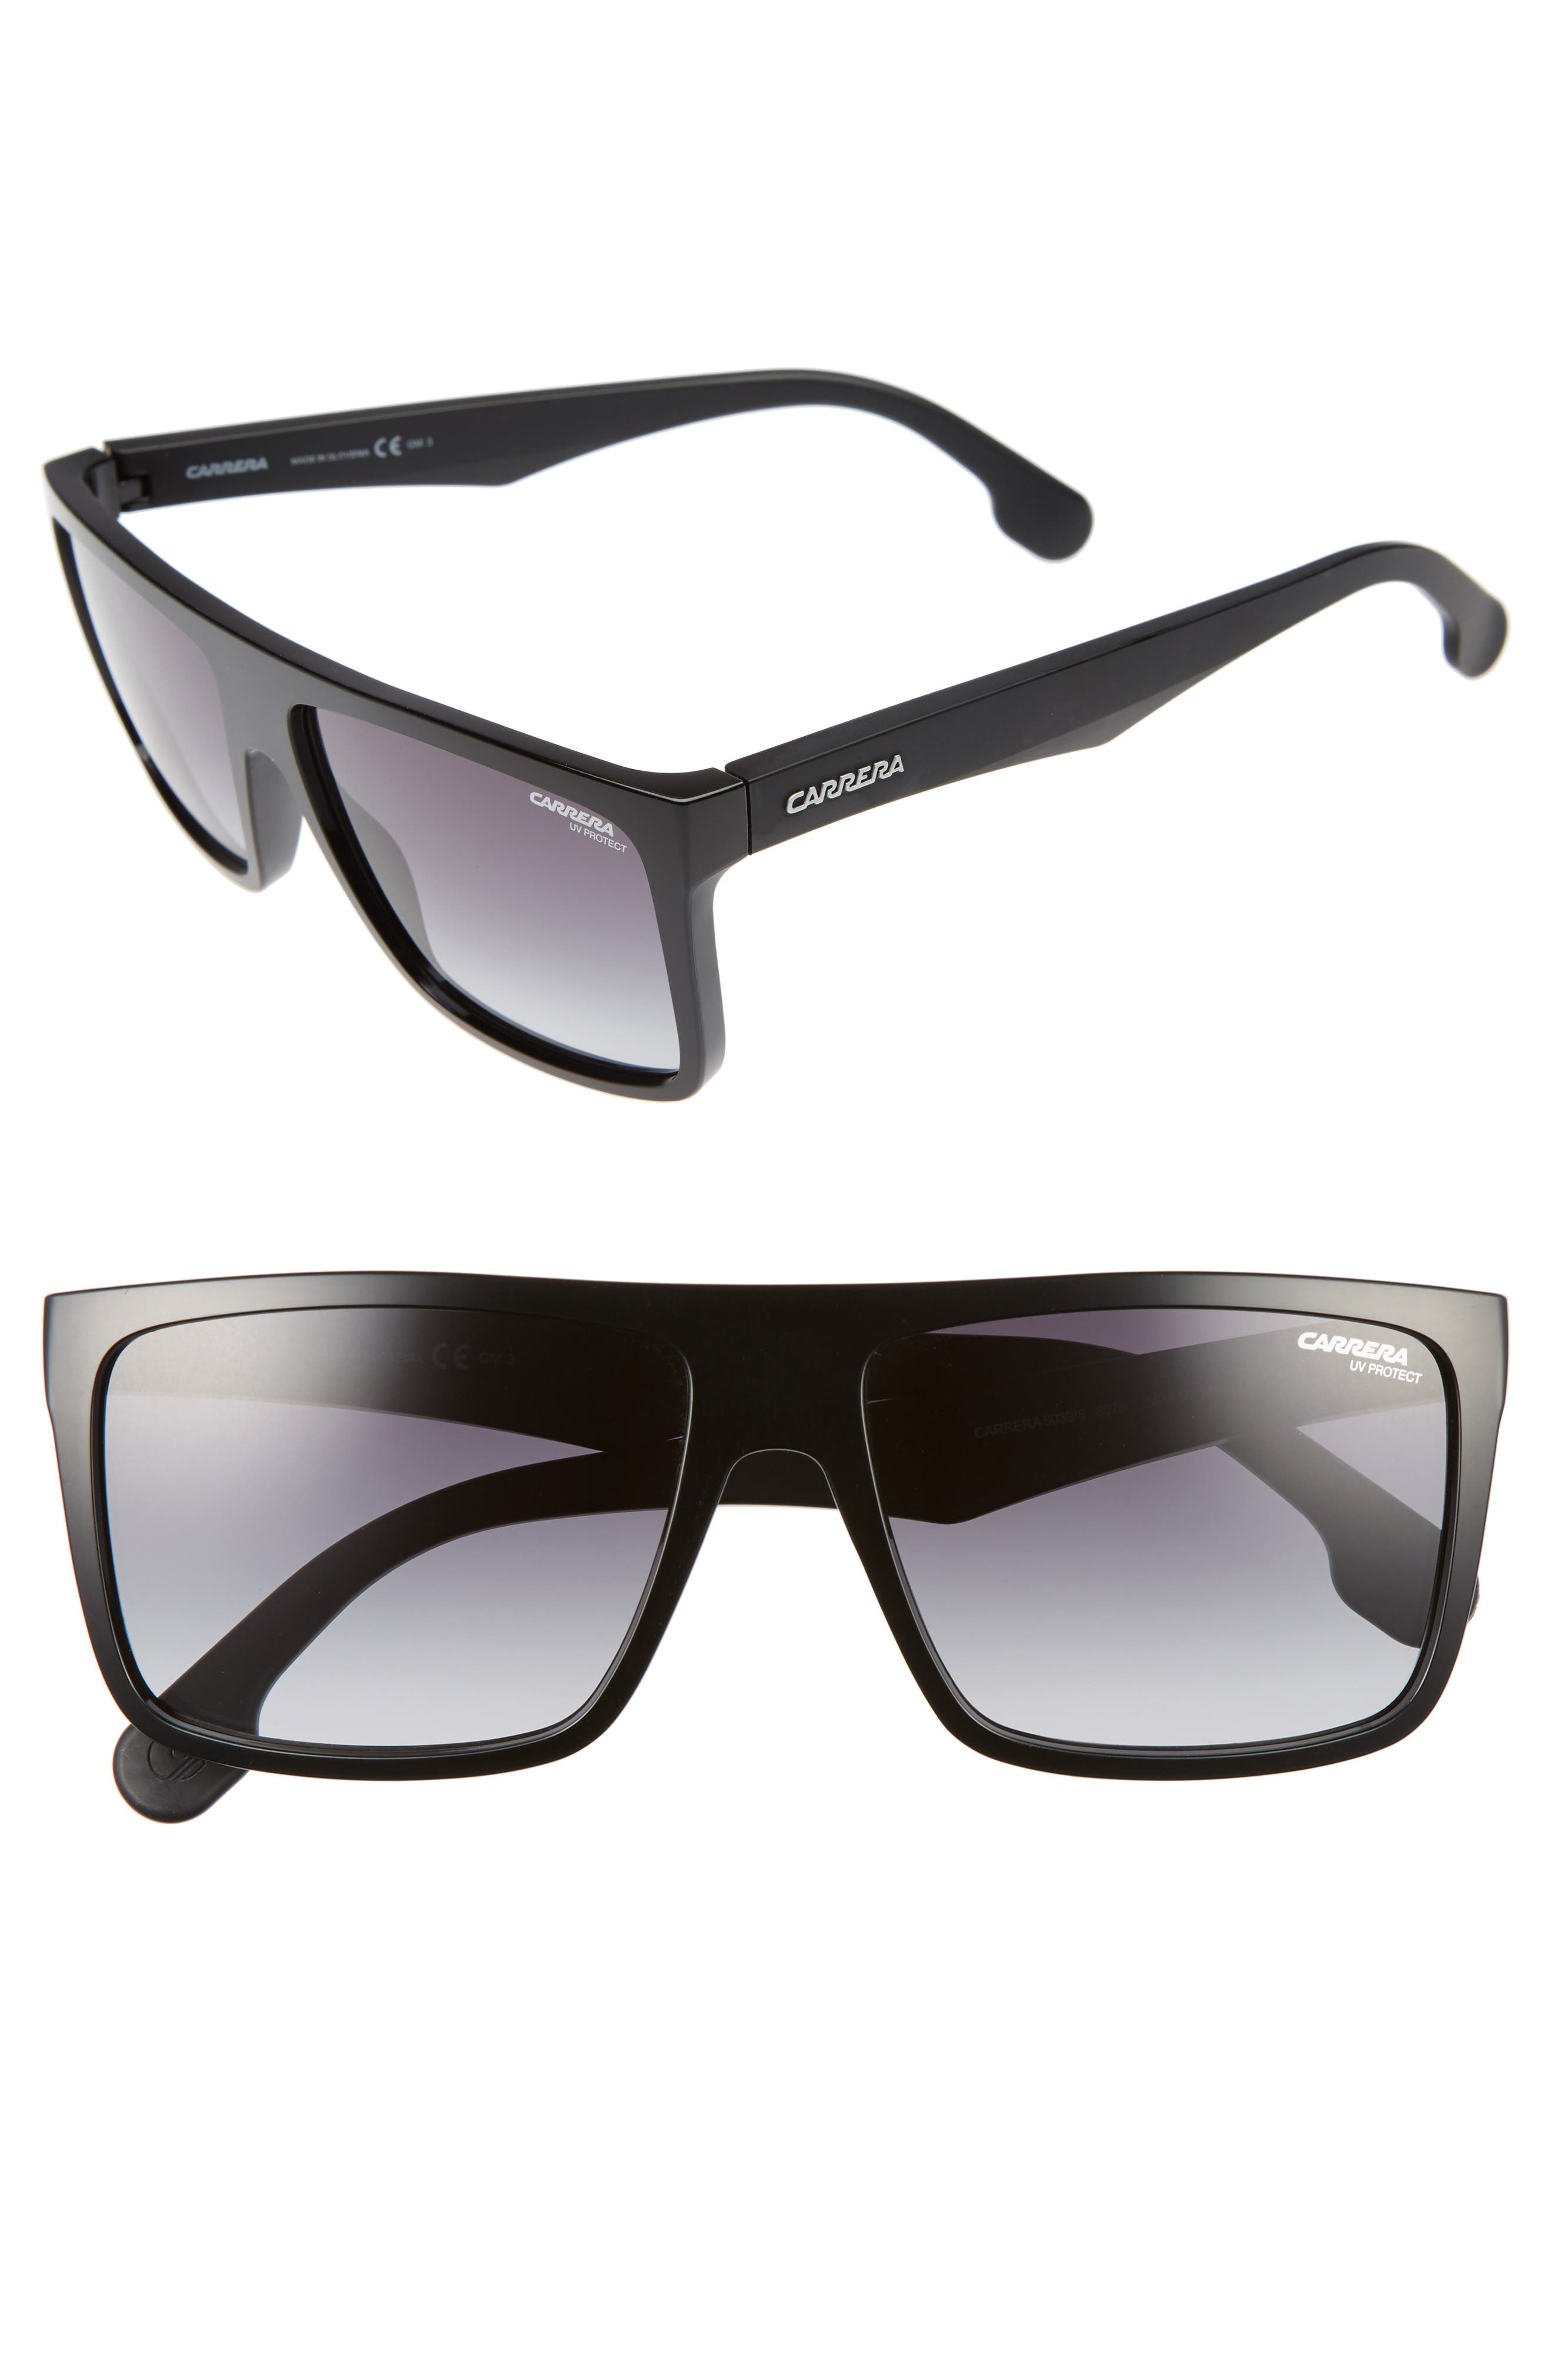 Carrera Eyewear 5m Sunglasses -